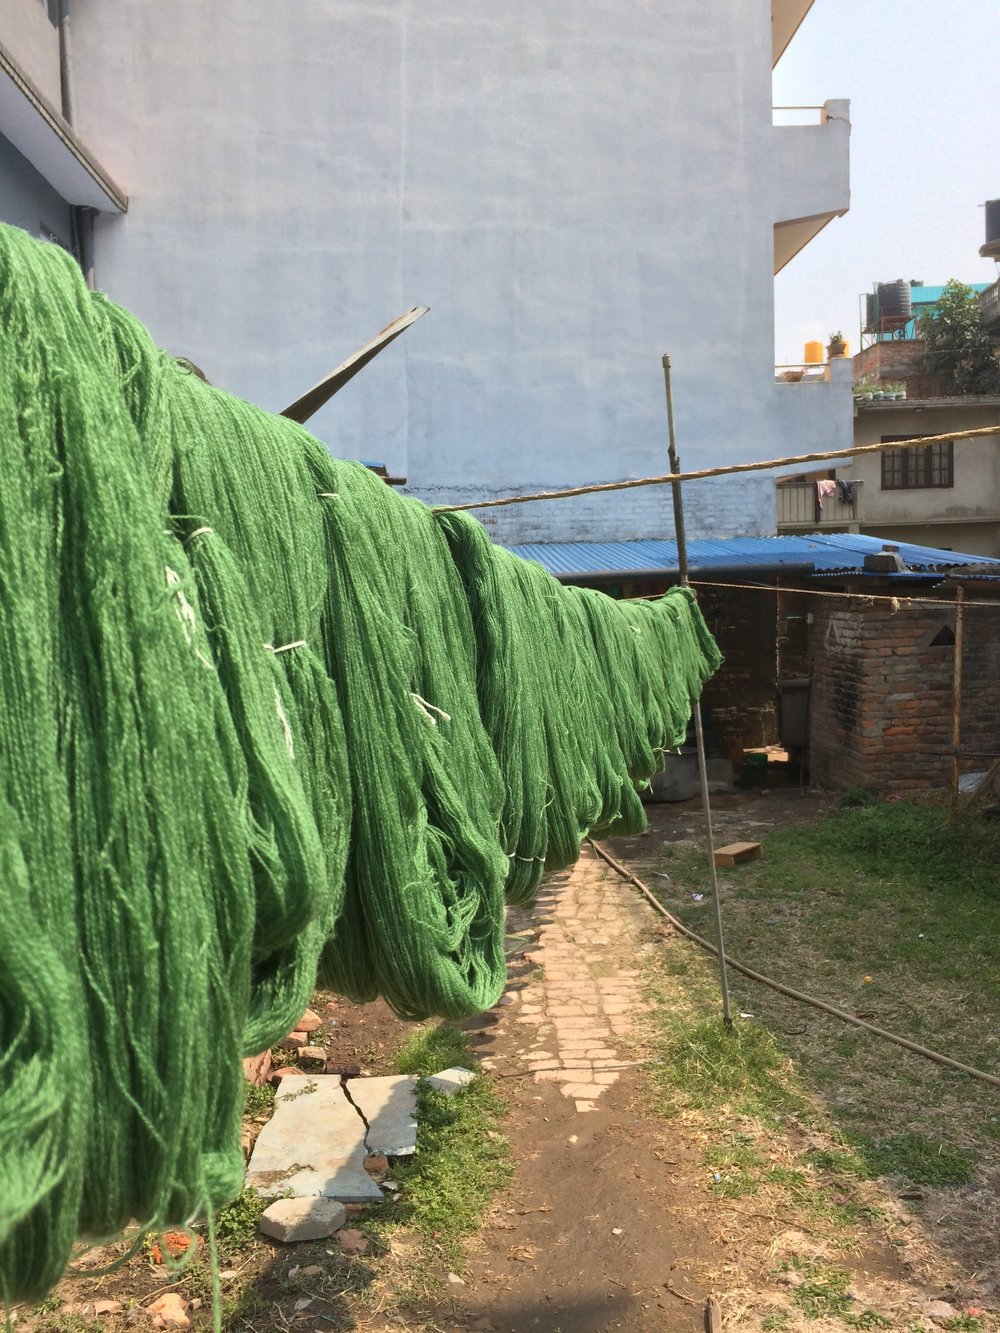 Wool, above, and linen, below, drying in the warm Nepali sun